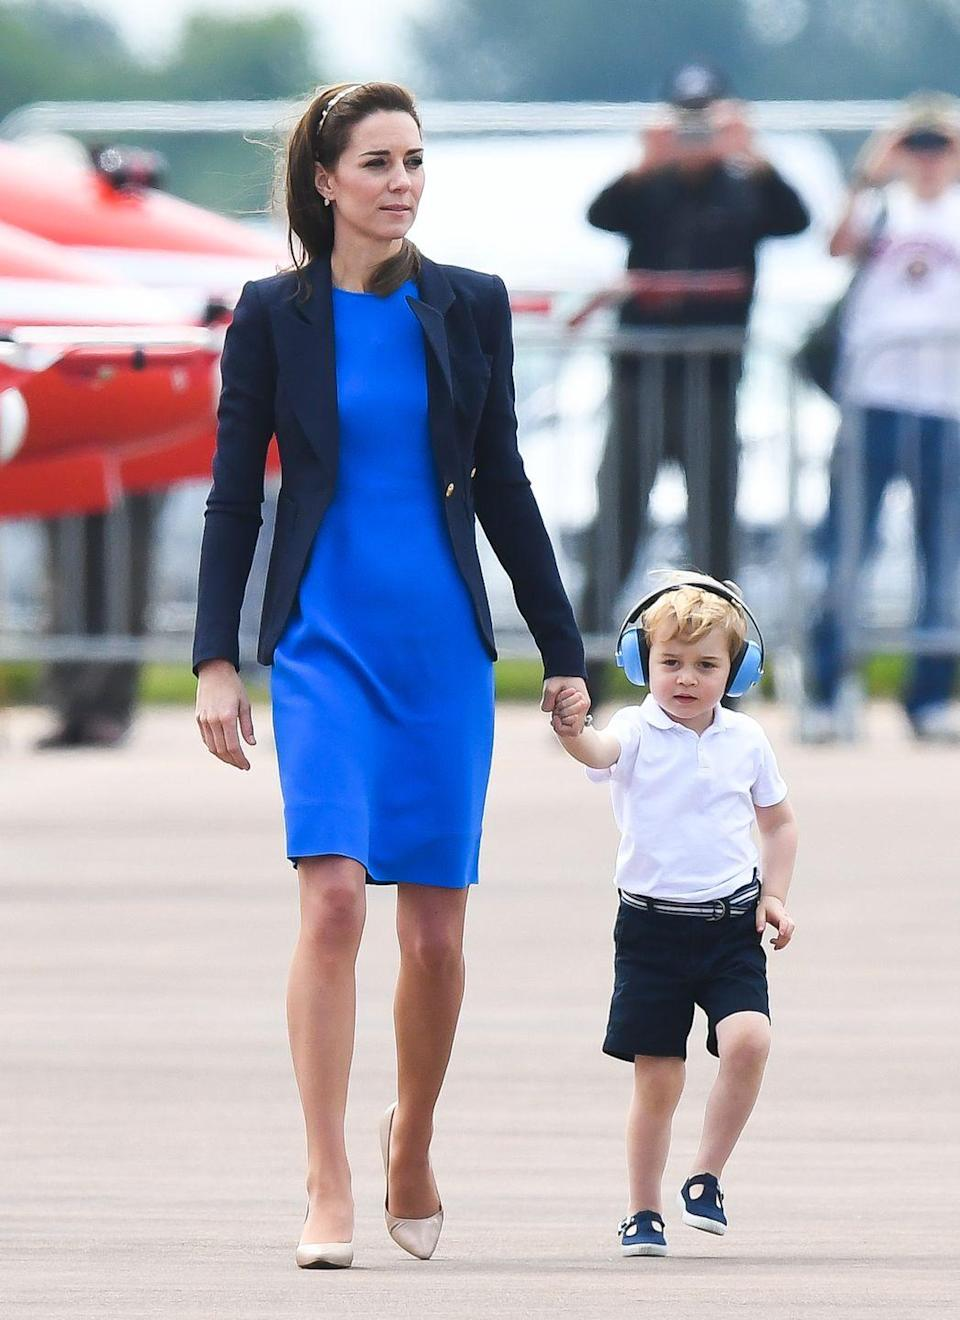 <p>The Duchess of Cambridge wore her go-to navy blue blazer on top of a cobalt blue shift dress to attend the The Royal International Air Tattoo at RAF Fairford on July 8, 2016.</p>